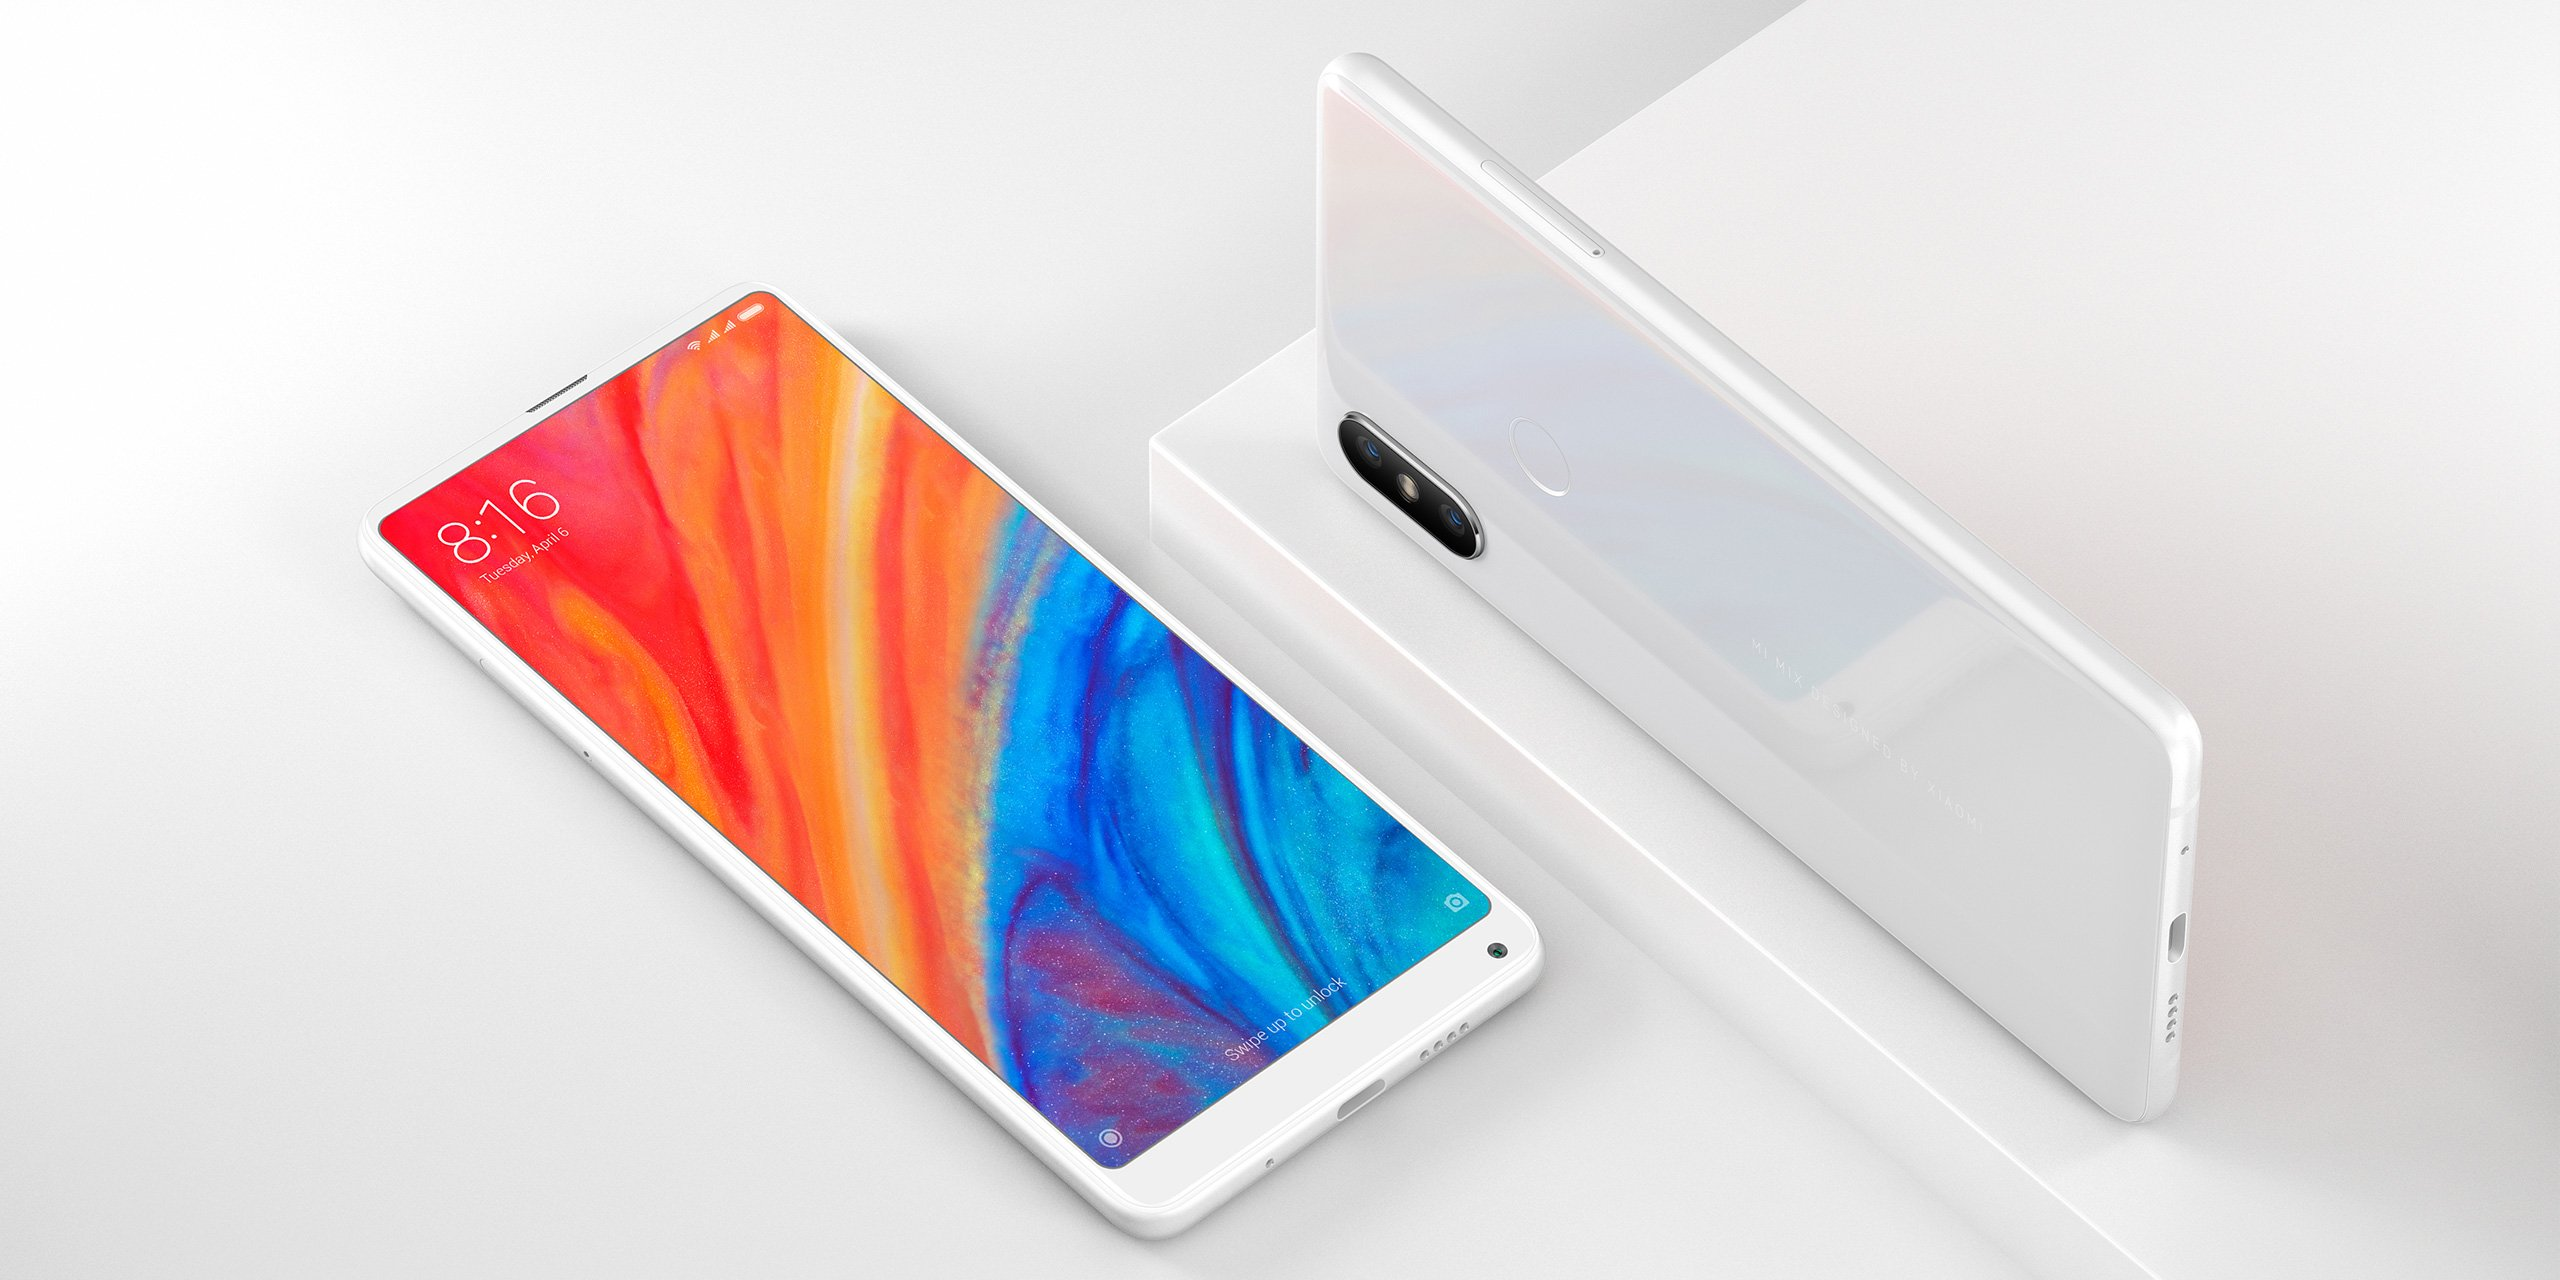 Xiaomi Mi Mix 2S and Mi Mix 3 get a taste of Android 11 through Custom ROM